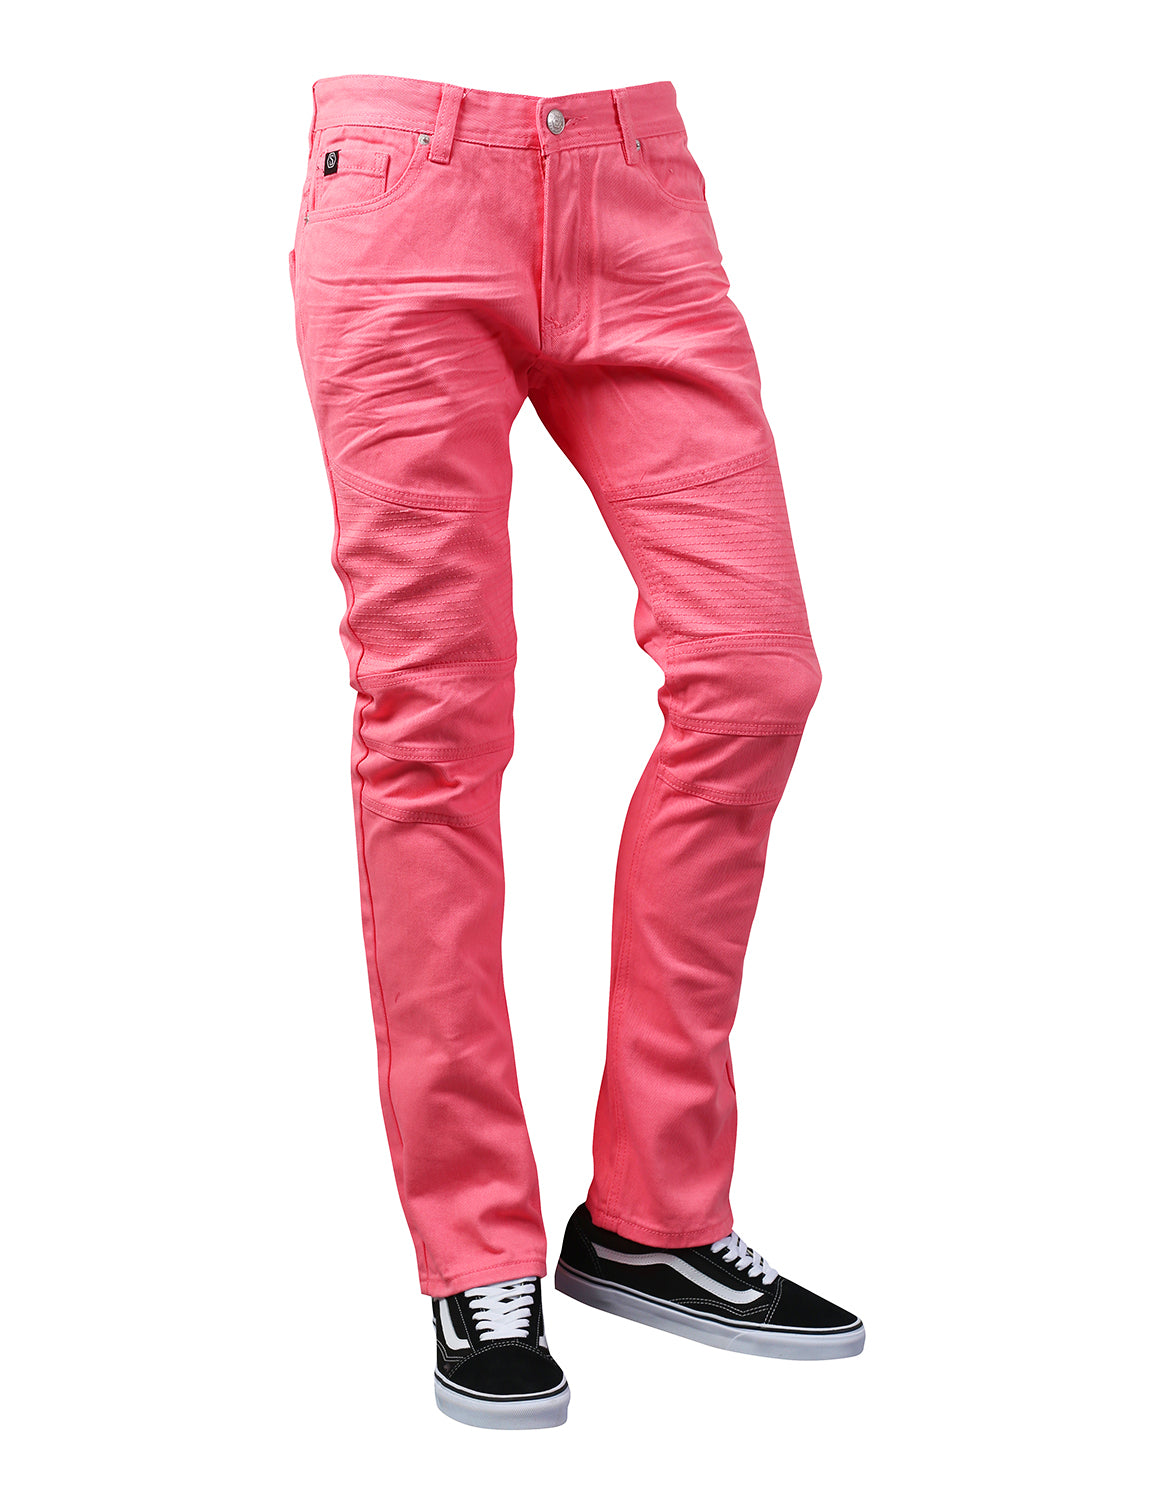 PINK Basic Color Moto Denim Jeans - URBANCREWS